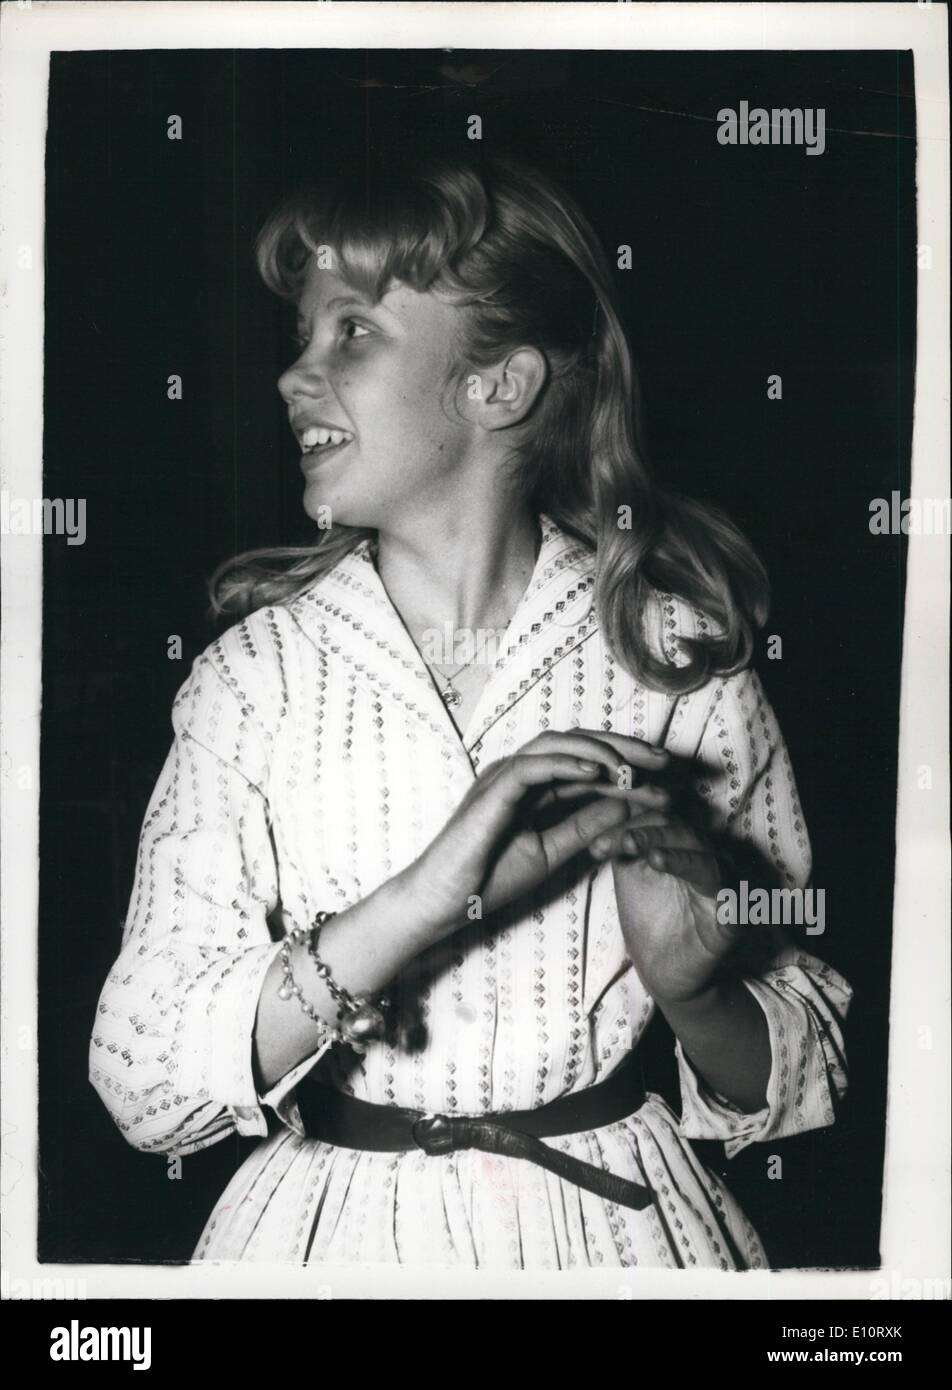 Jan. 01, 1974 - Hayley Mills - Makes her first disc; Talented daughter of film star John Mills, Hayley went to a London recording studio today to make her first recordings. She sang the title song of the Disney film Pollyanna, in which she stars and which will have its West end Premiere in August. Between spells before the microphone Hayler practised on the piano and went over the score with pianist Dennis Wilson, of the Wally Stott Orchestra. With Hayley was her mother - Stock Image